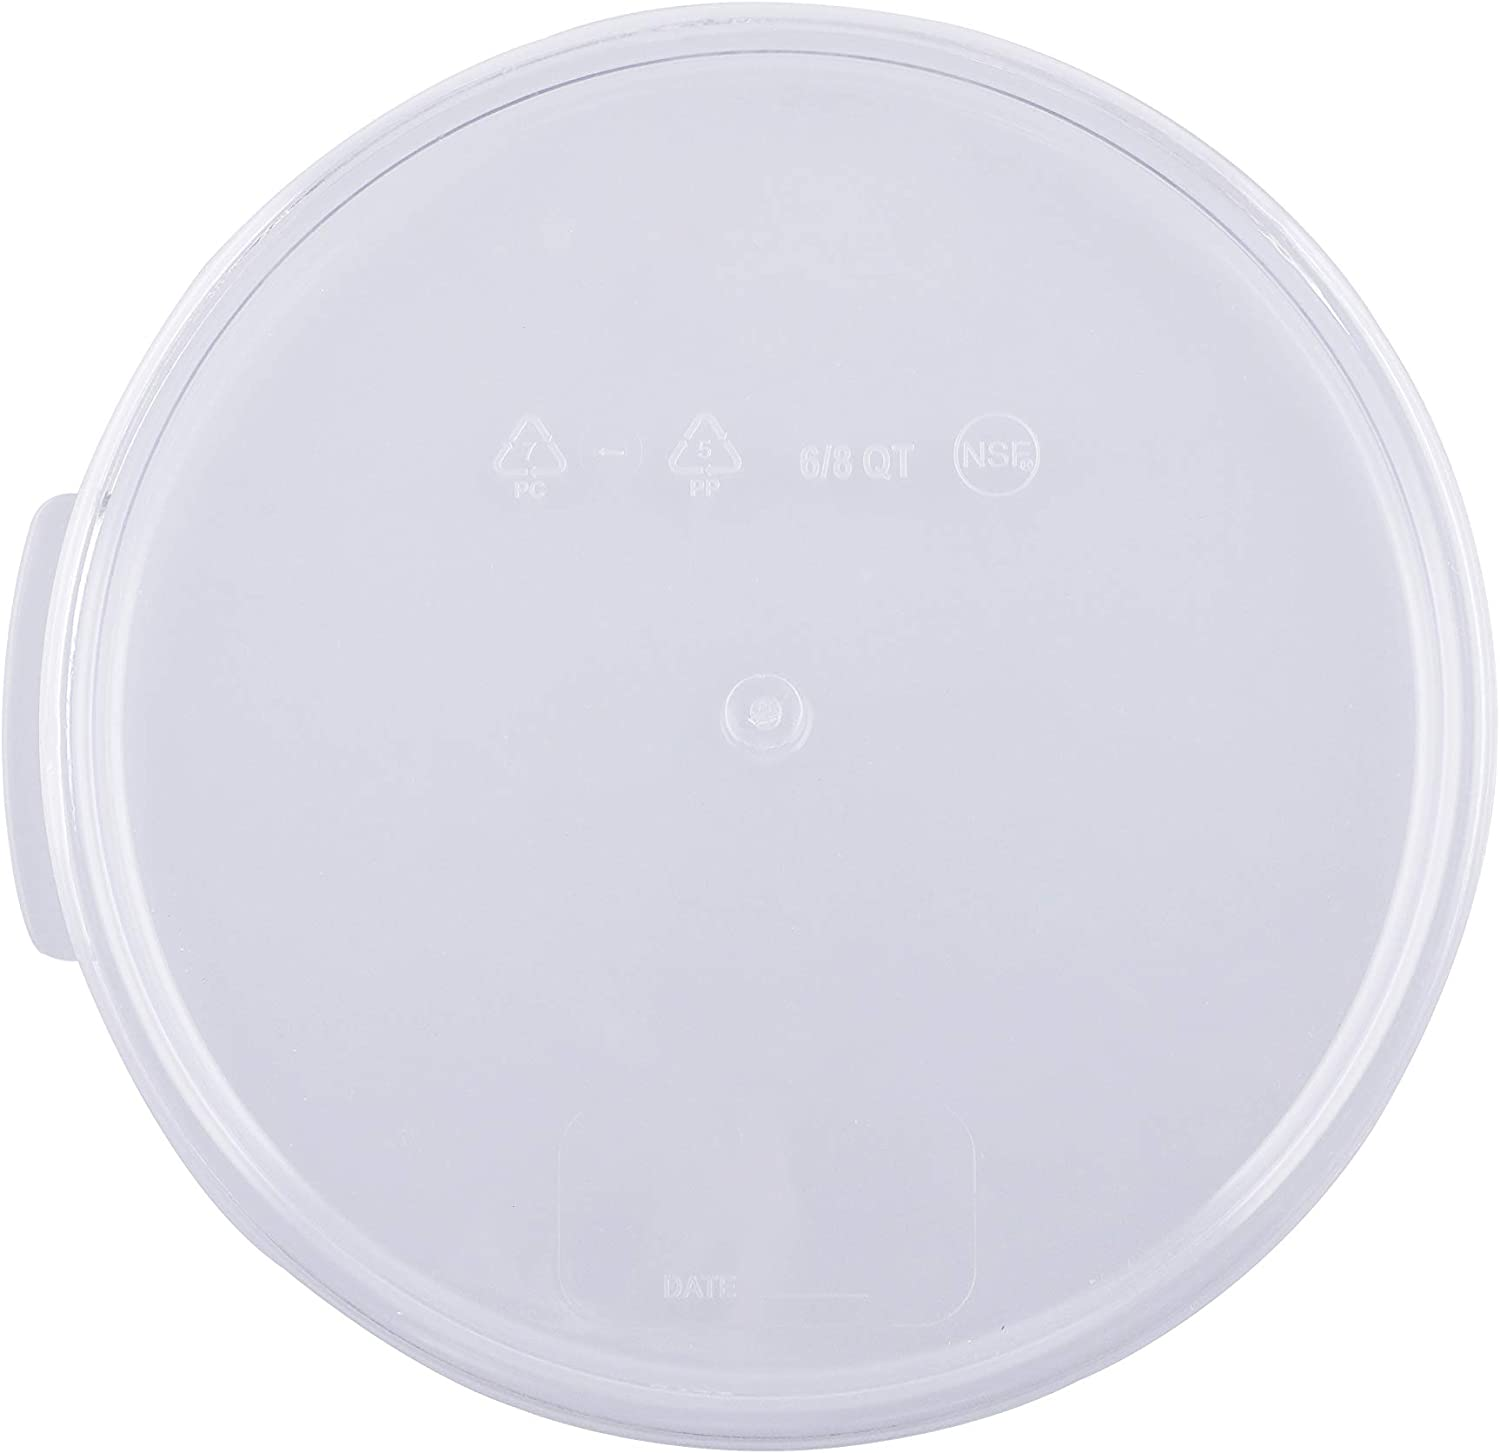 Caspian 6 and 8 Qt. Clear Round Storage Box Container Lid, 1 Piece (6、8QT Lid)